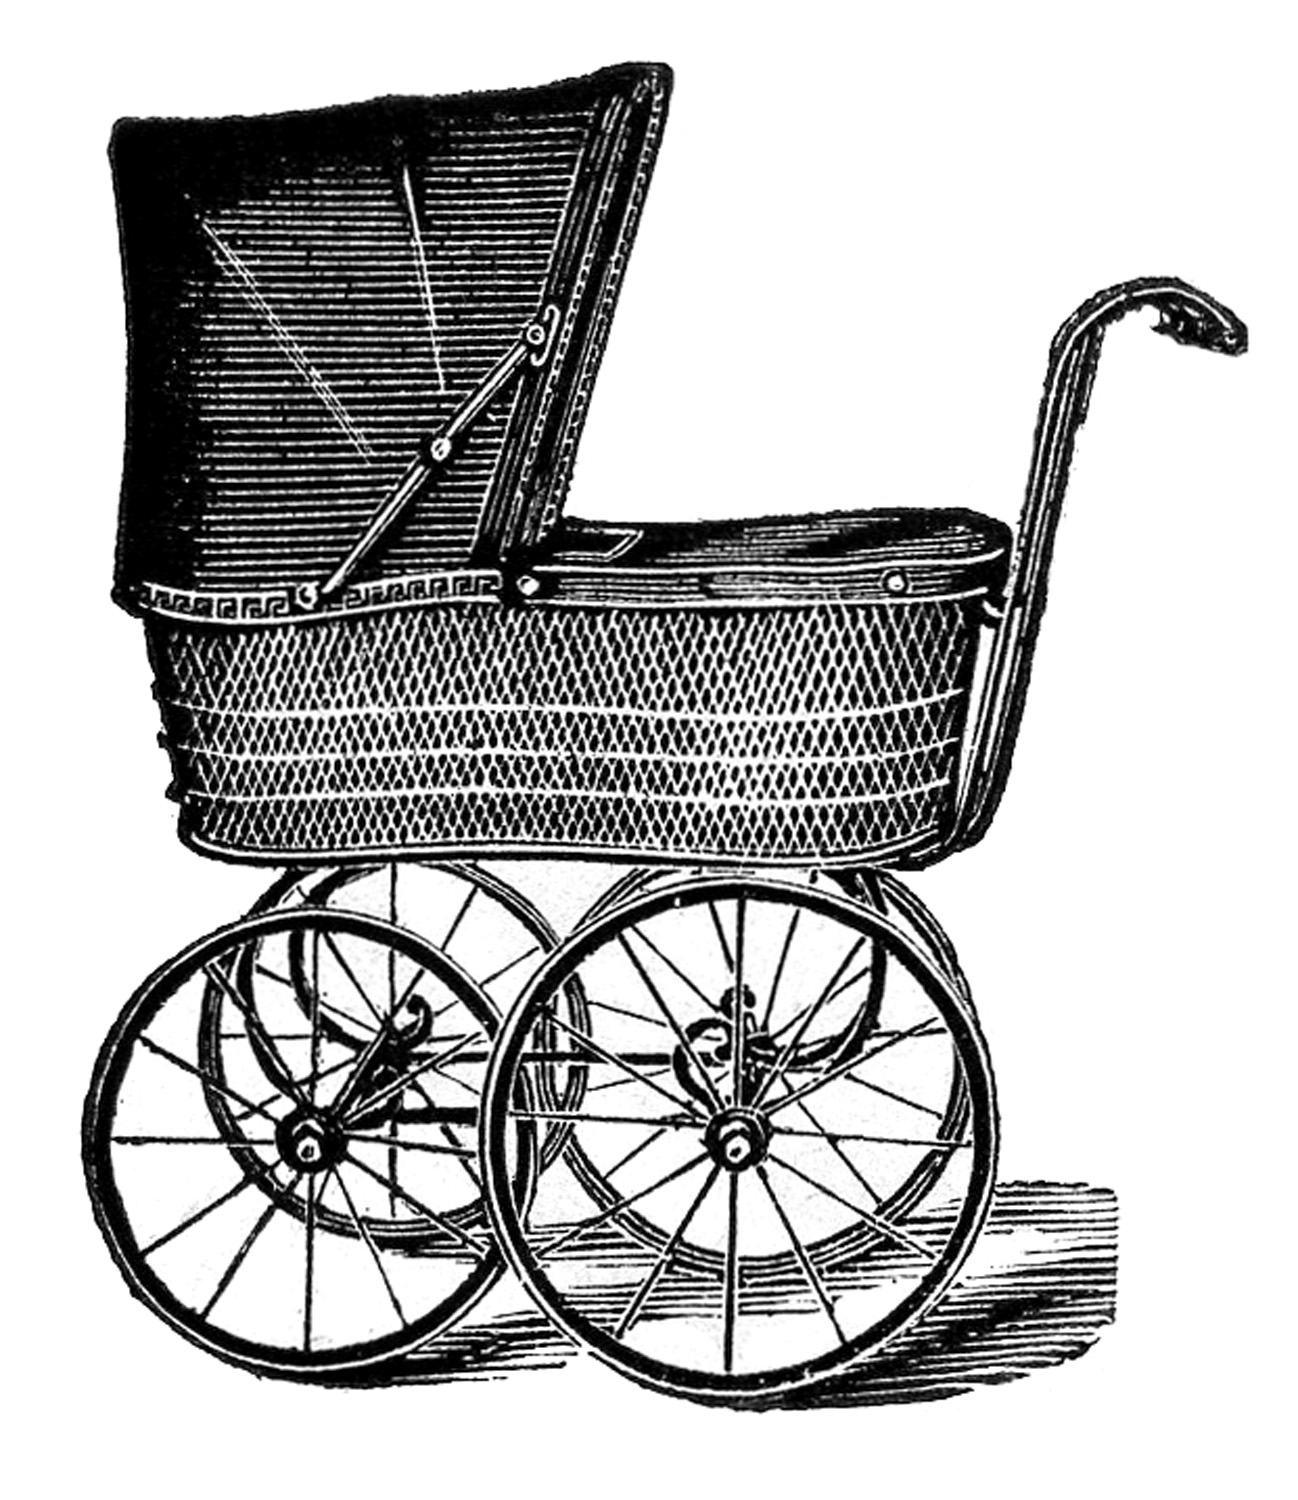 Vintage baby rattle clipart download Royalty Free Images - Vintage Baby Carriages - The Graphics ... download